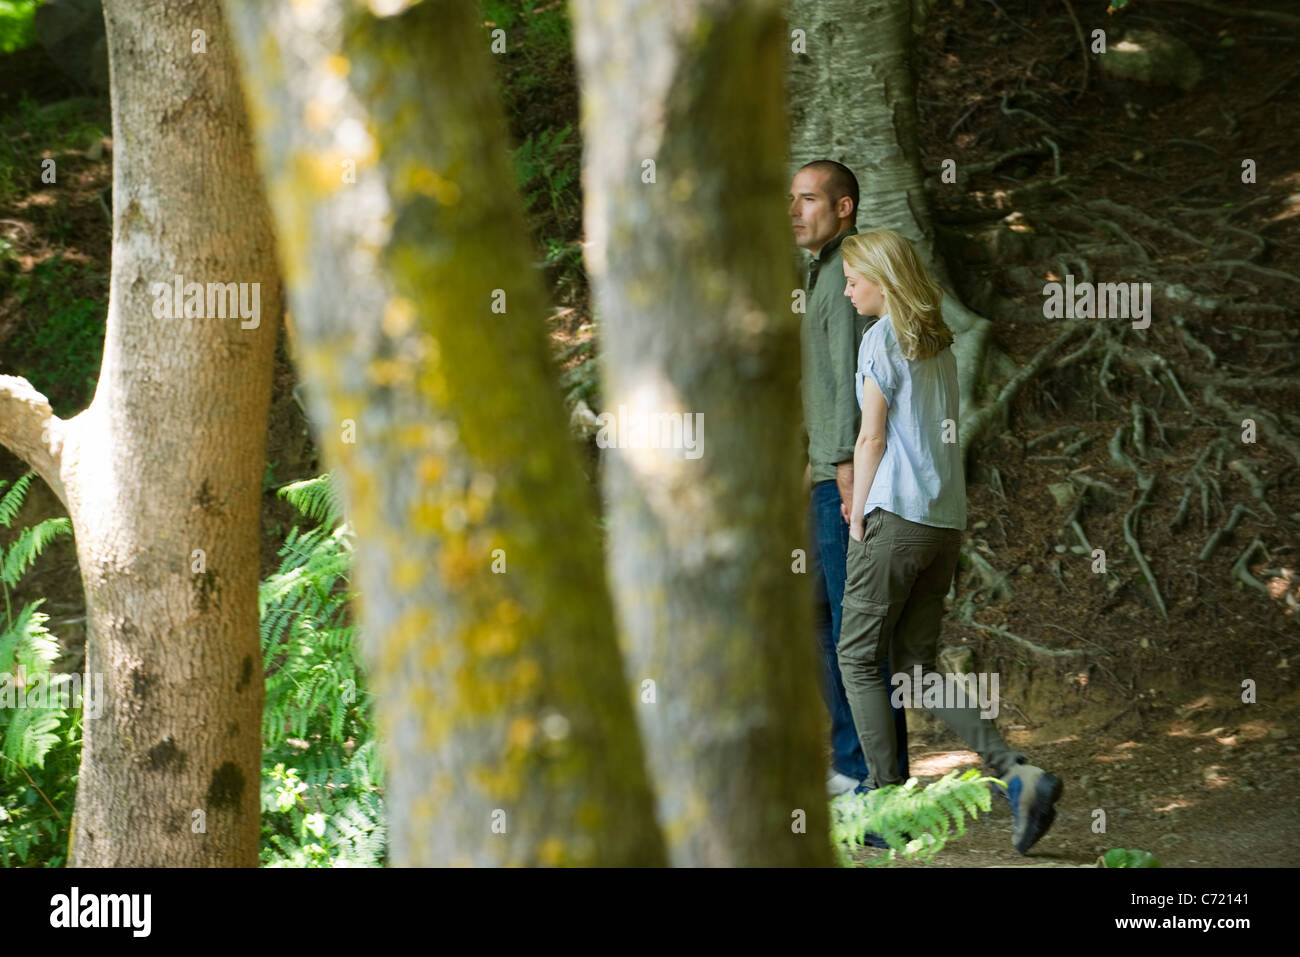 Couple walking in woods Stock Photo